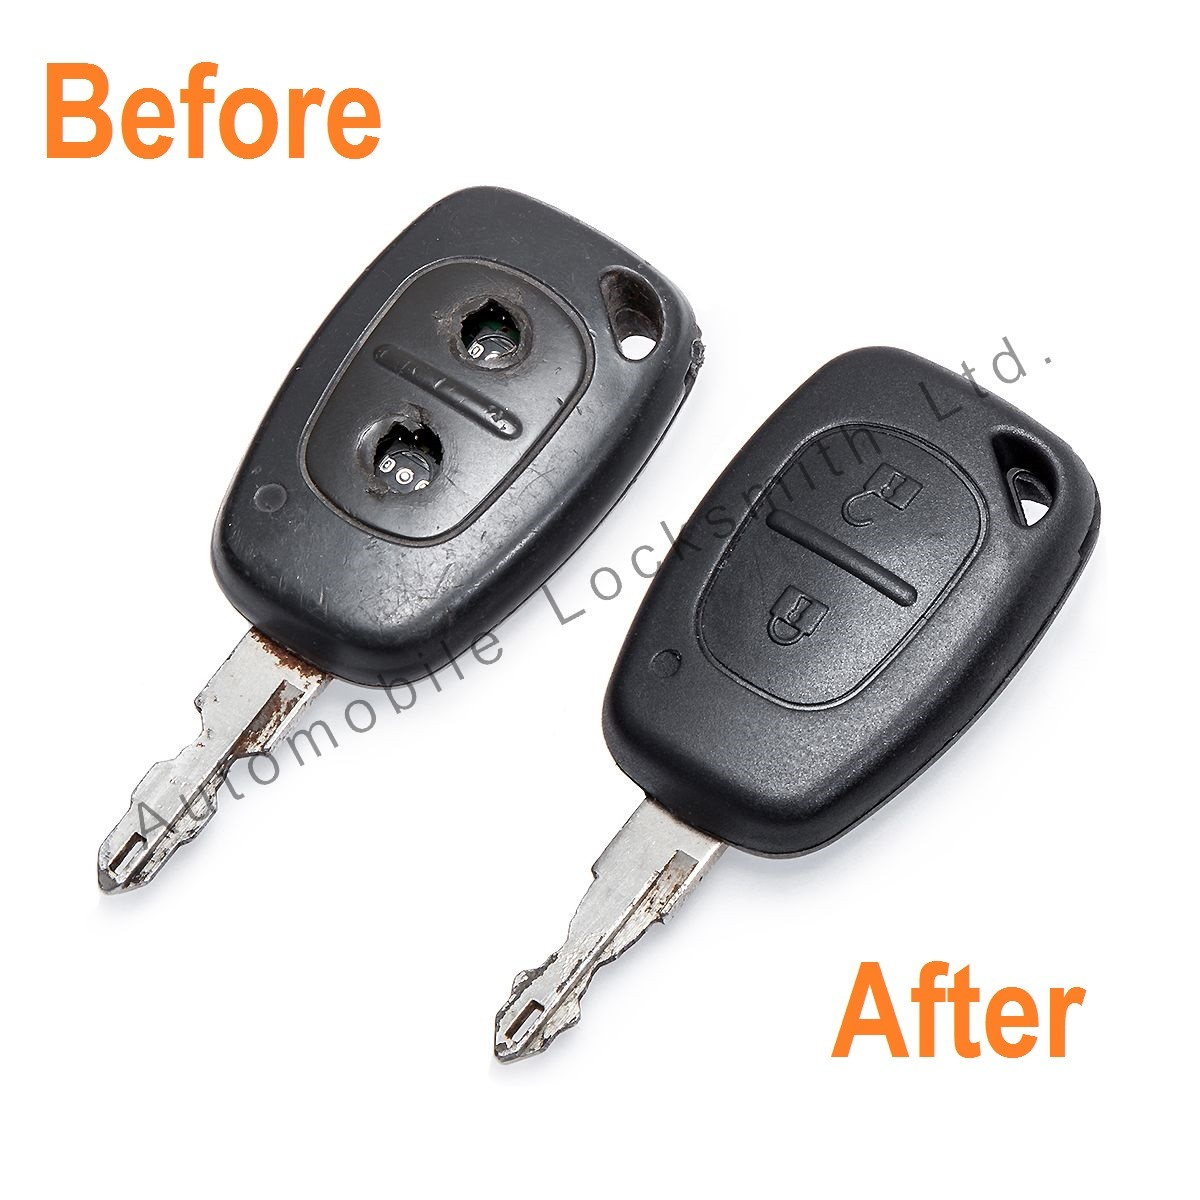 Repair Service for Renault Vauxhall Nissan 2 Button Remote Key